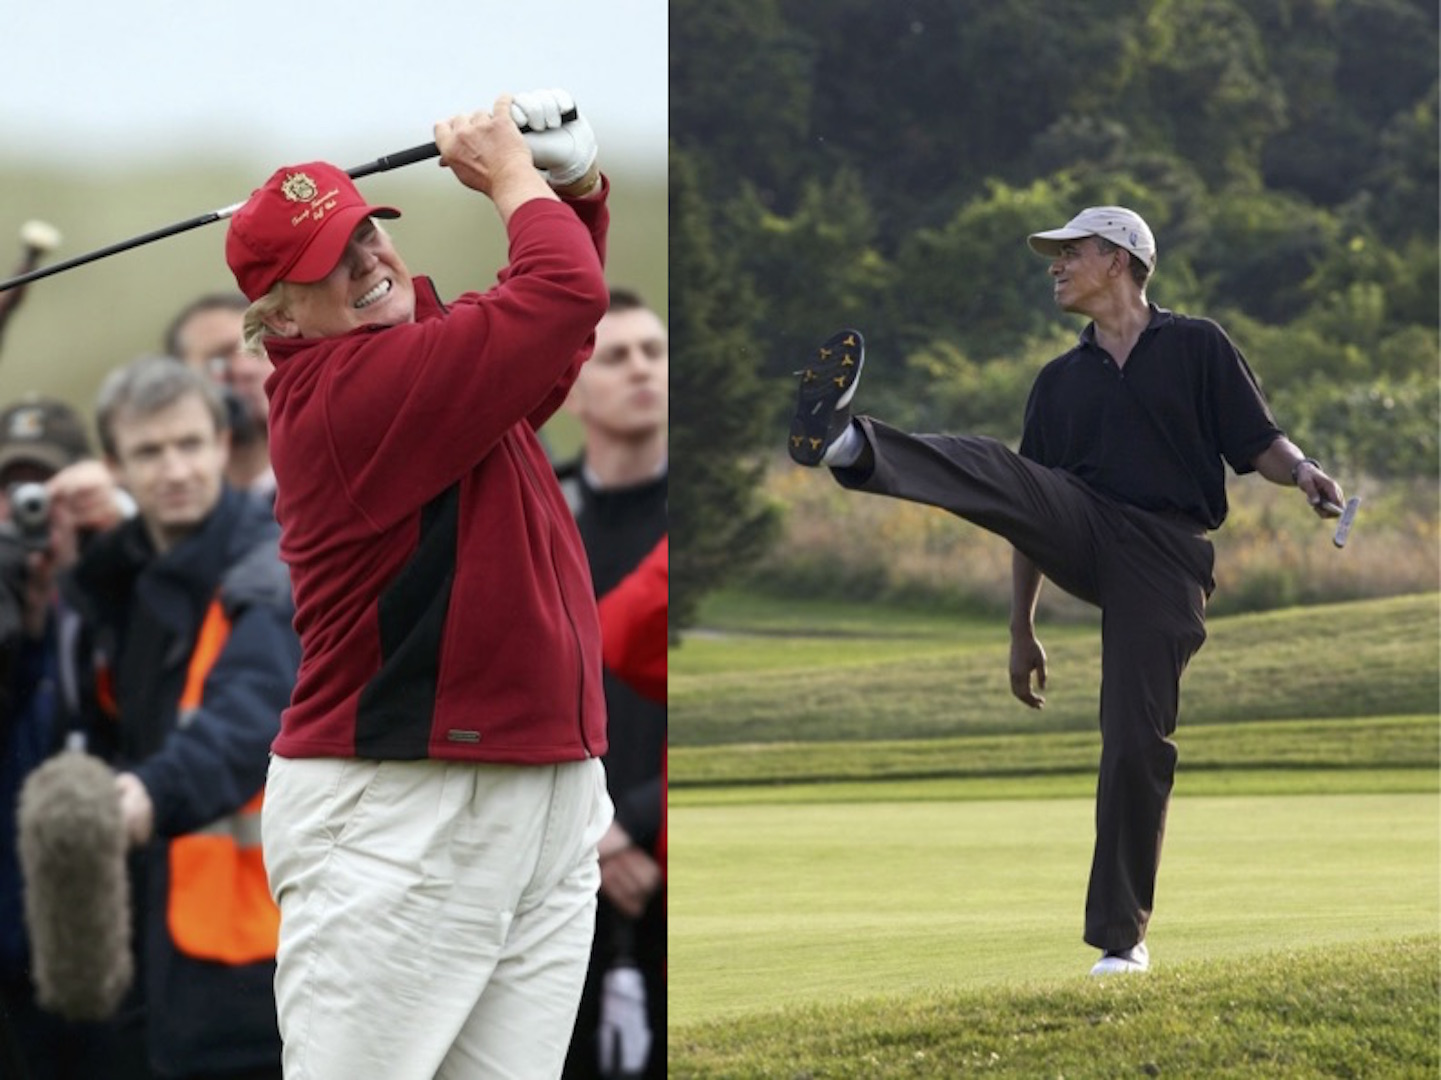 Trump calls out Obama for golf match. Again!